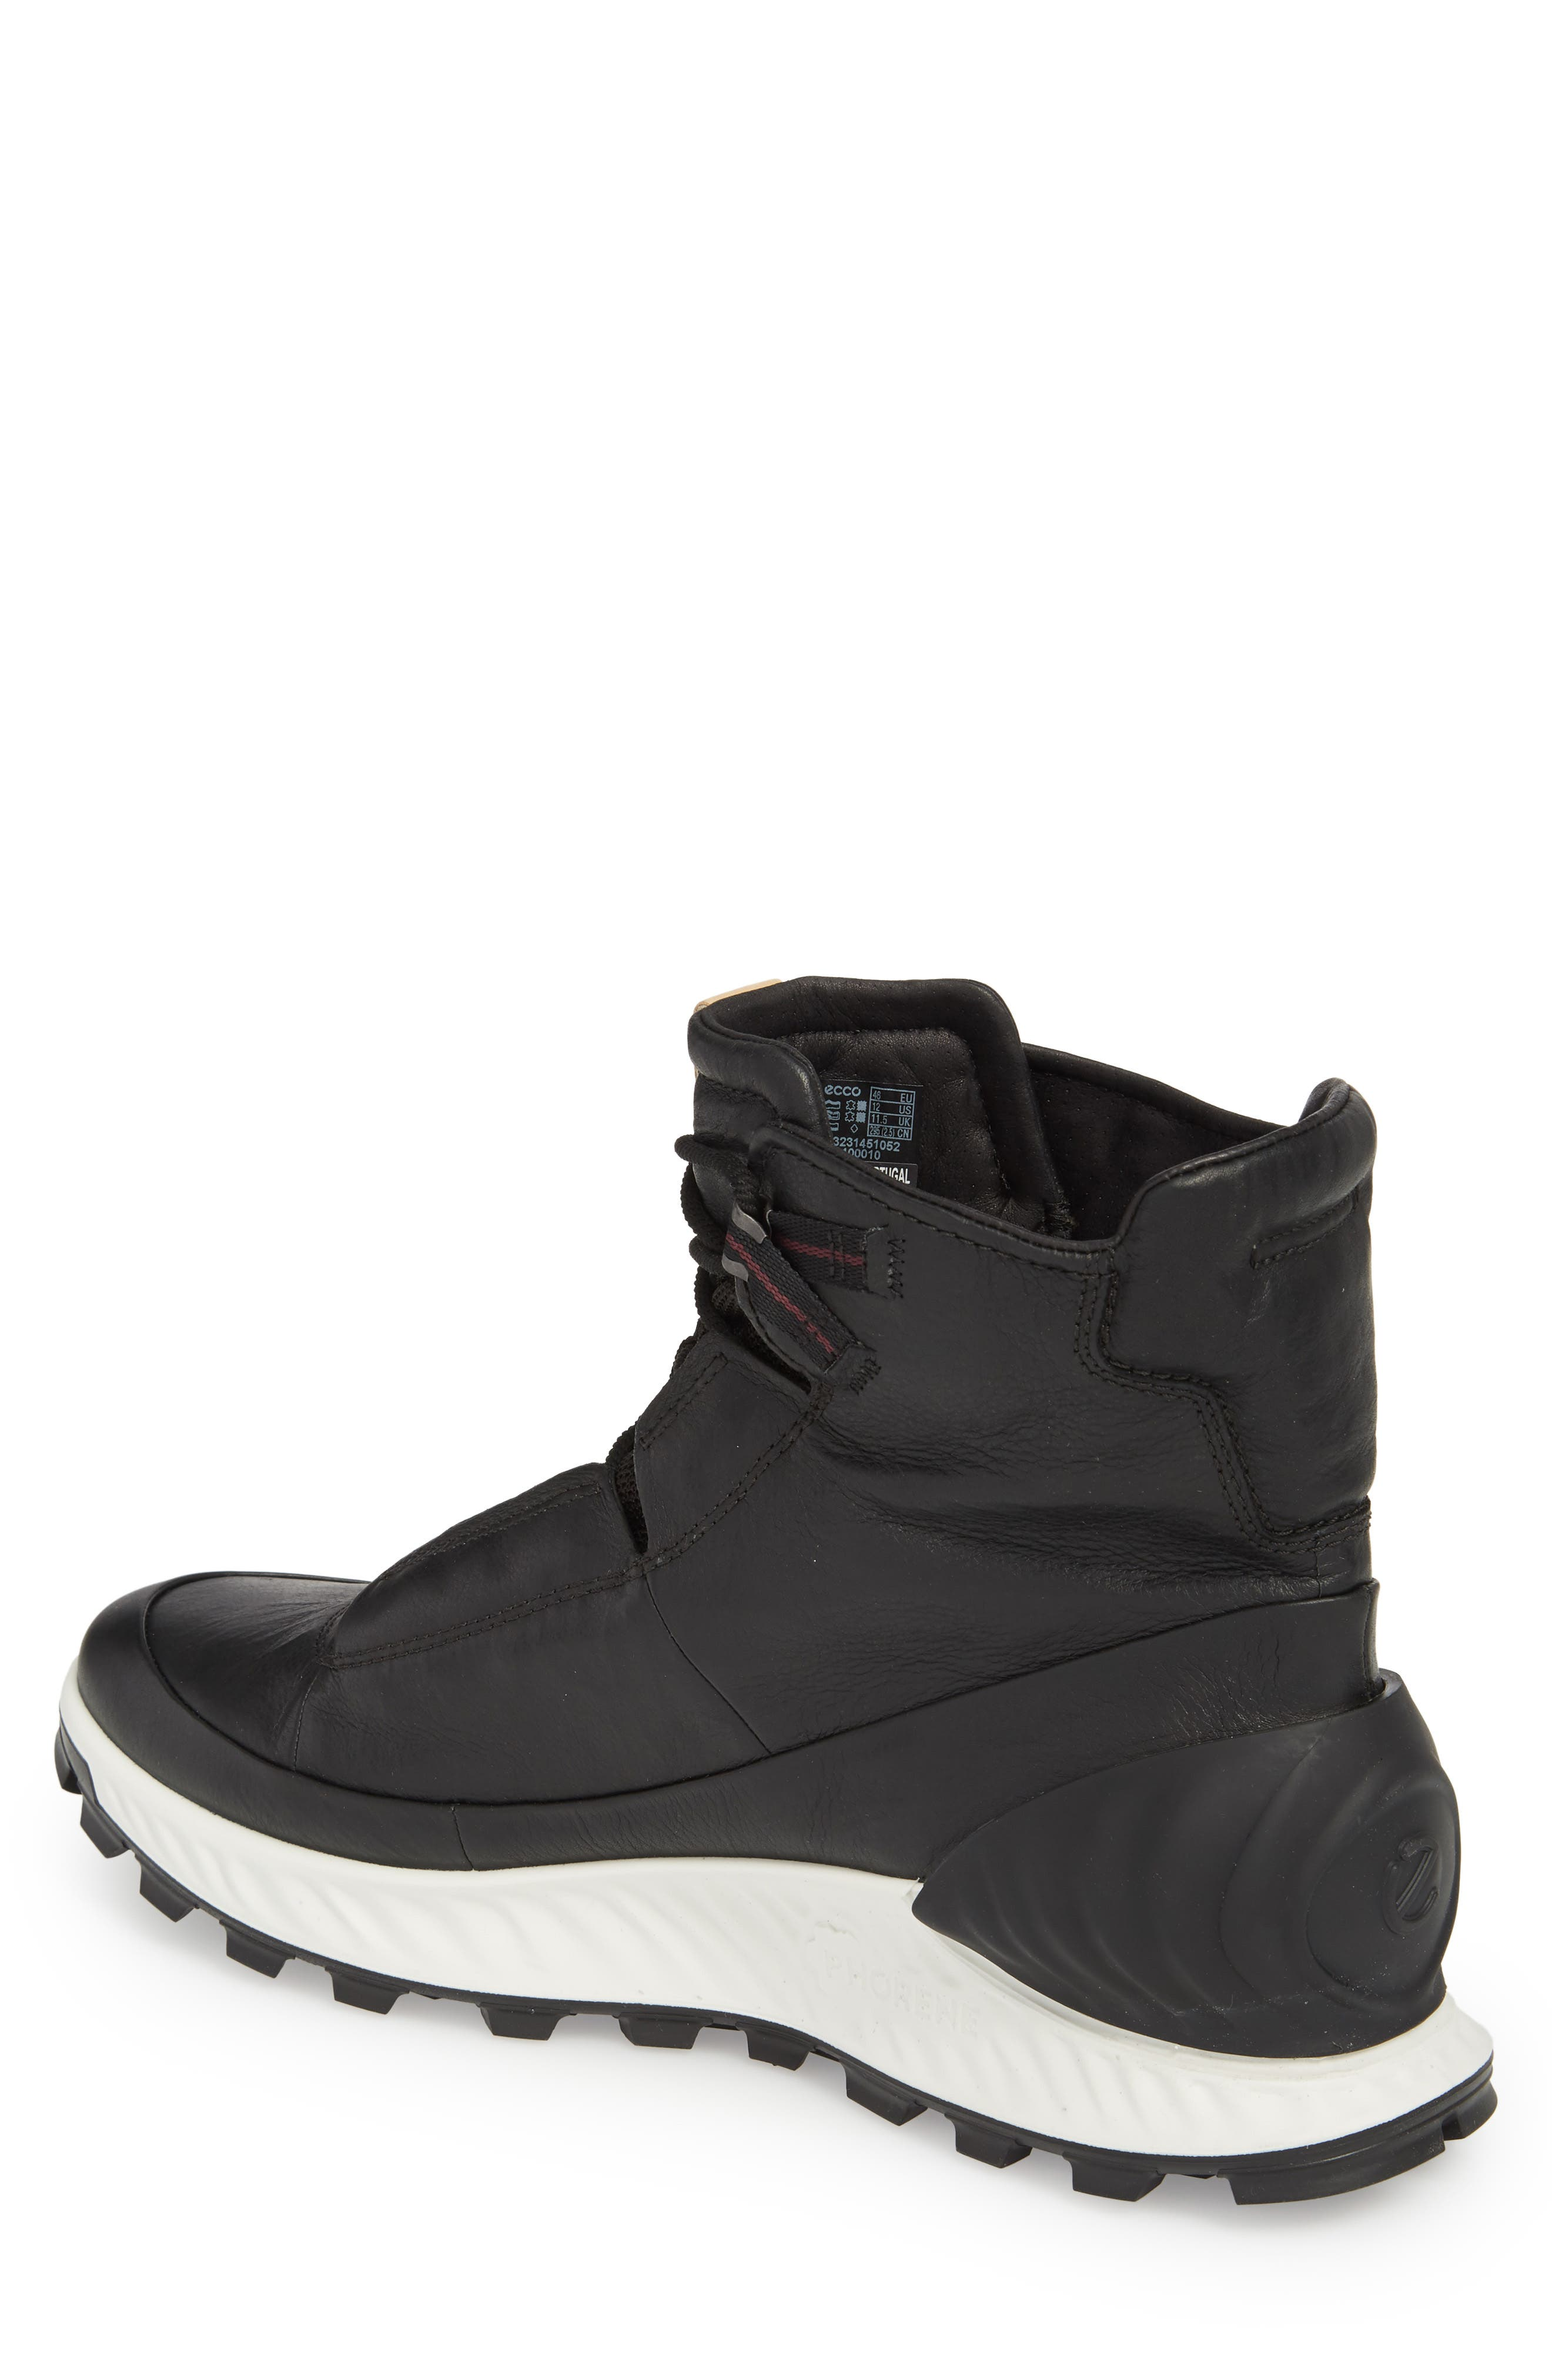 Limited Edition Exostrike Dyneema Sneaker Boot,                             Alternate thumbnail 2, color,                             BLACK LEATHER